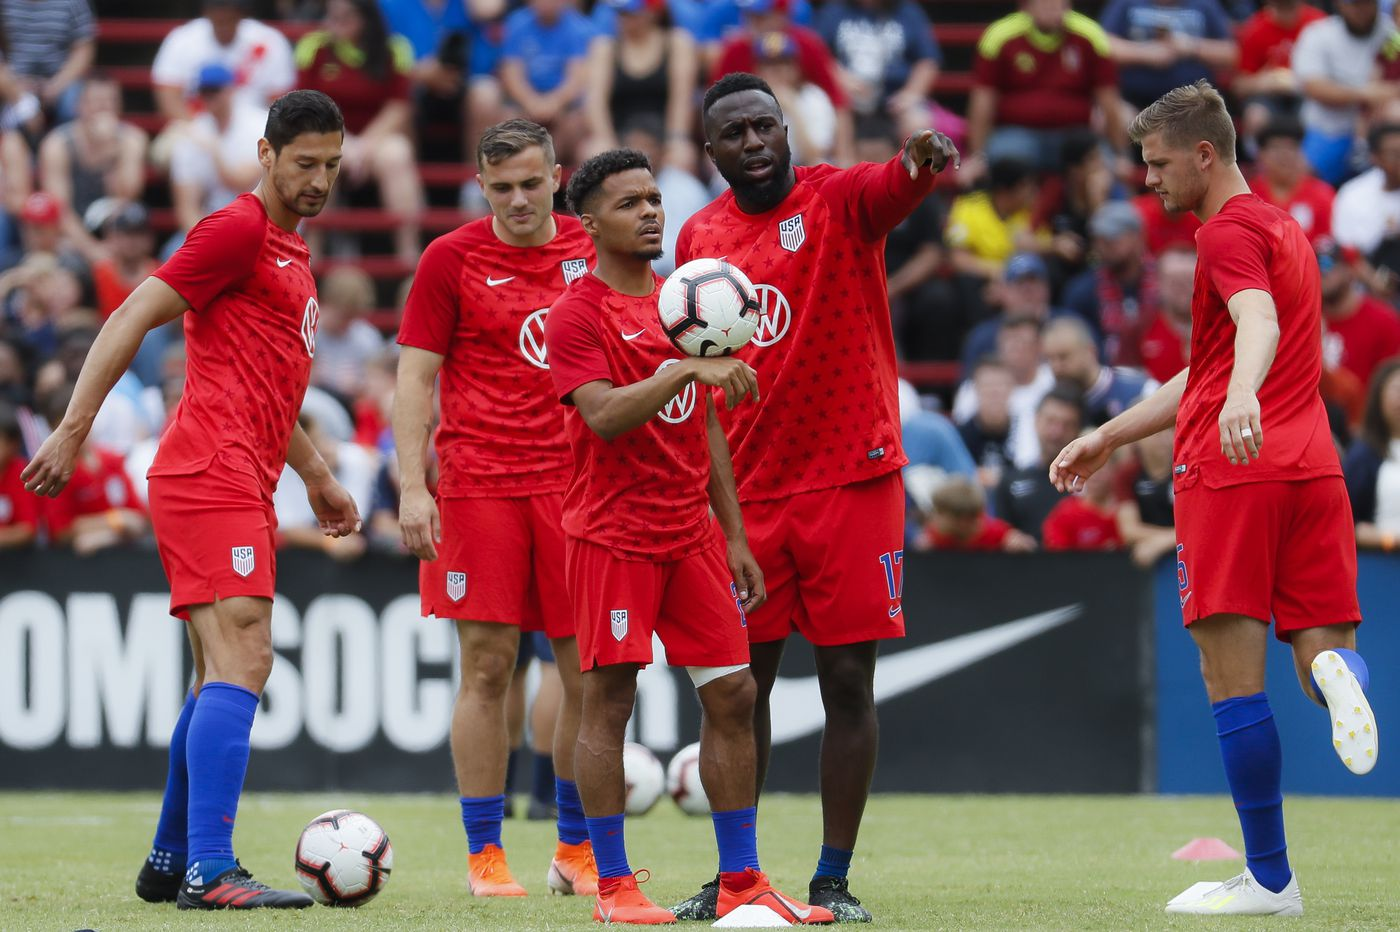 USMNT routed by Venezuela 3-0 in last Gold Cup warmup game